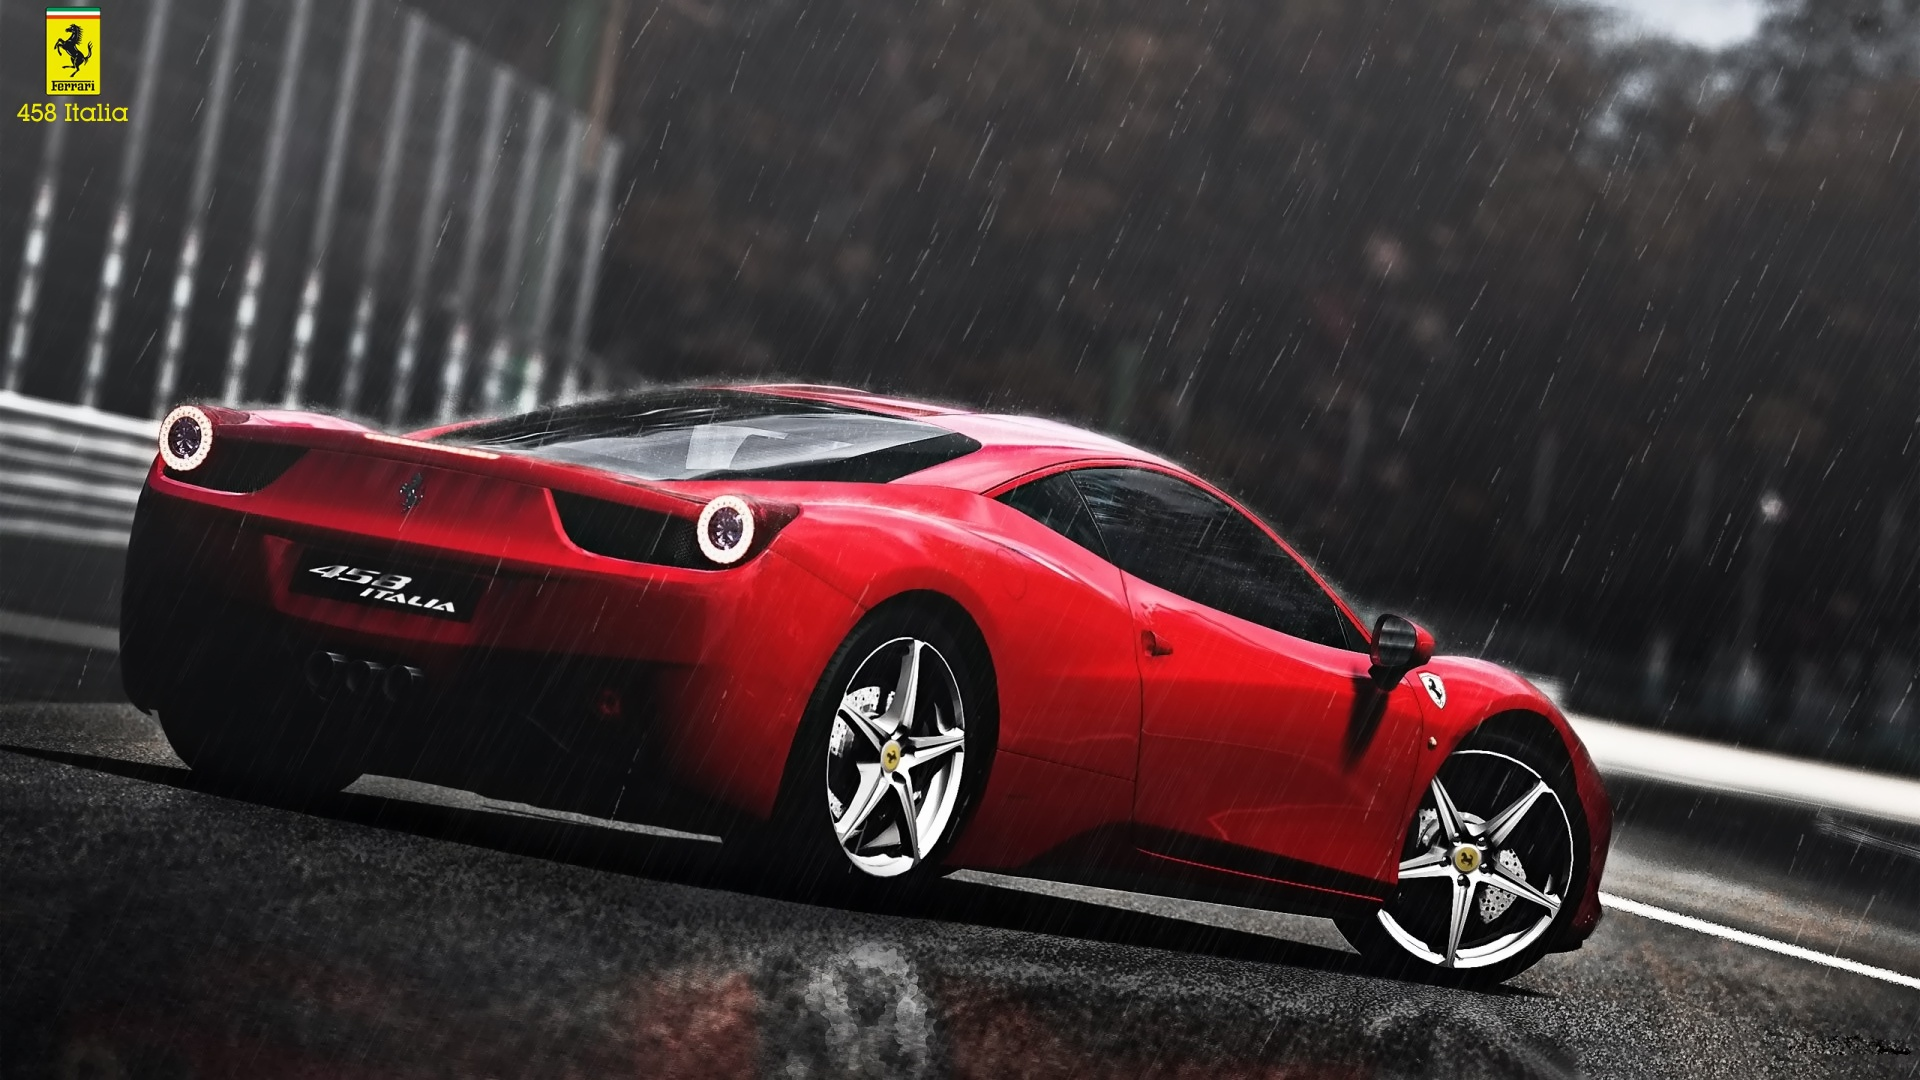 ferrari 458 italia wallpaper hd wallpapersafari